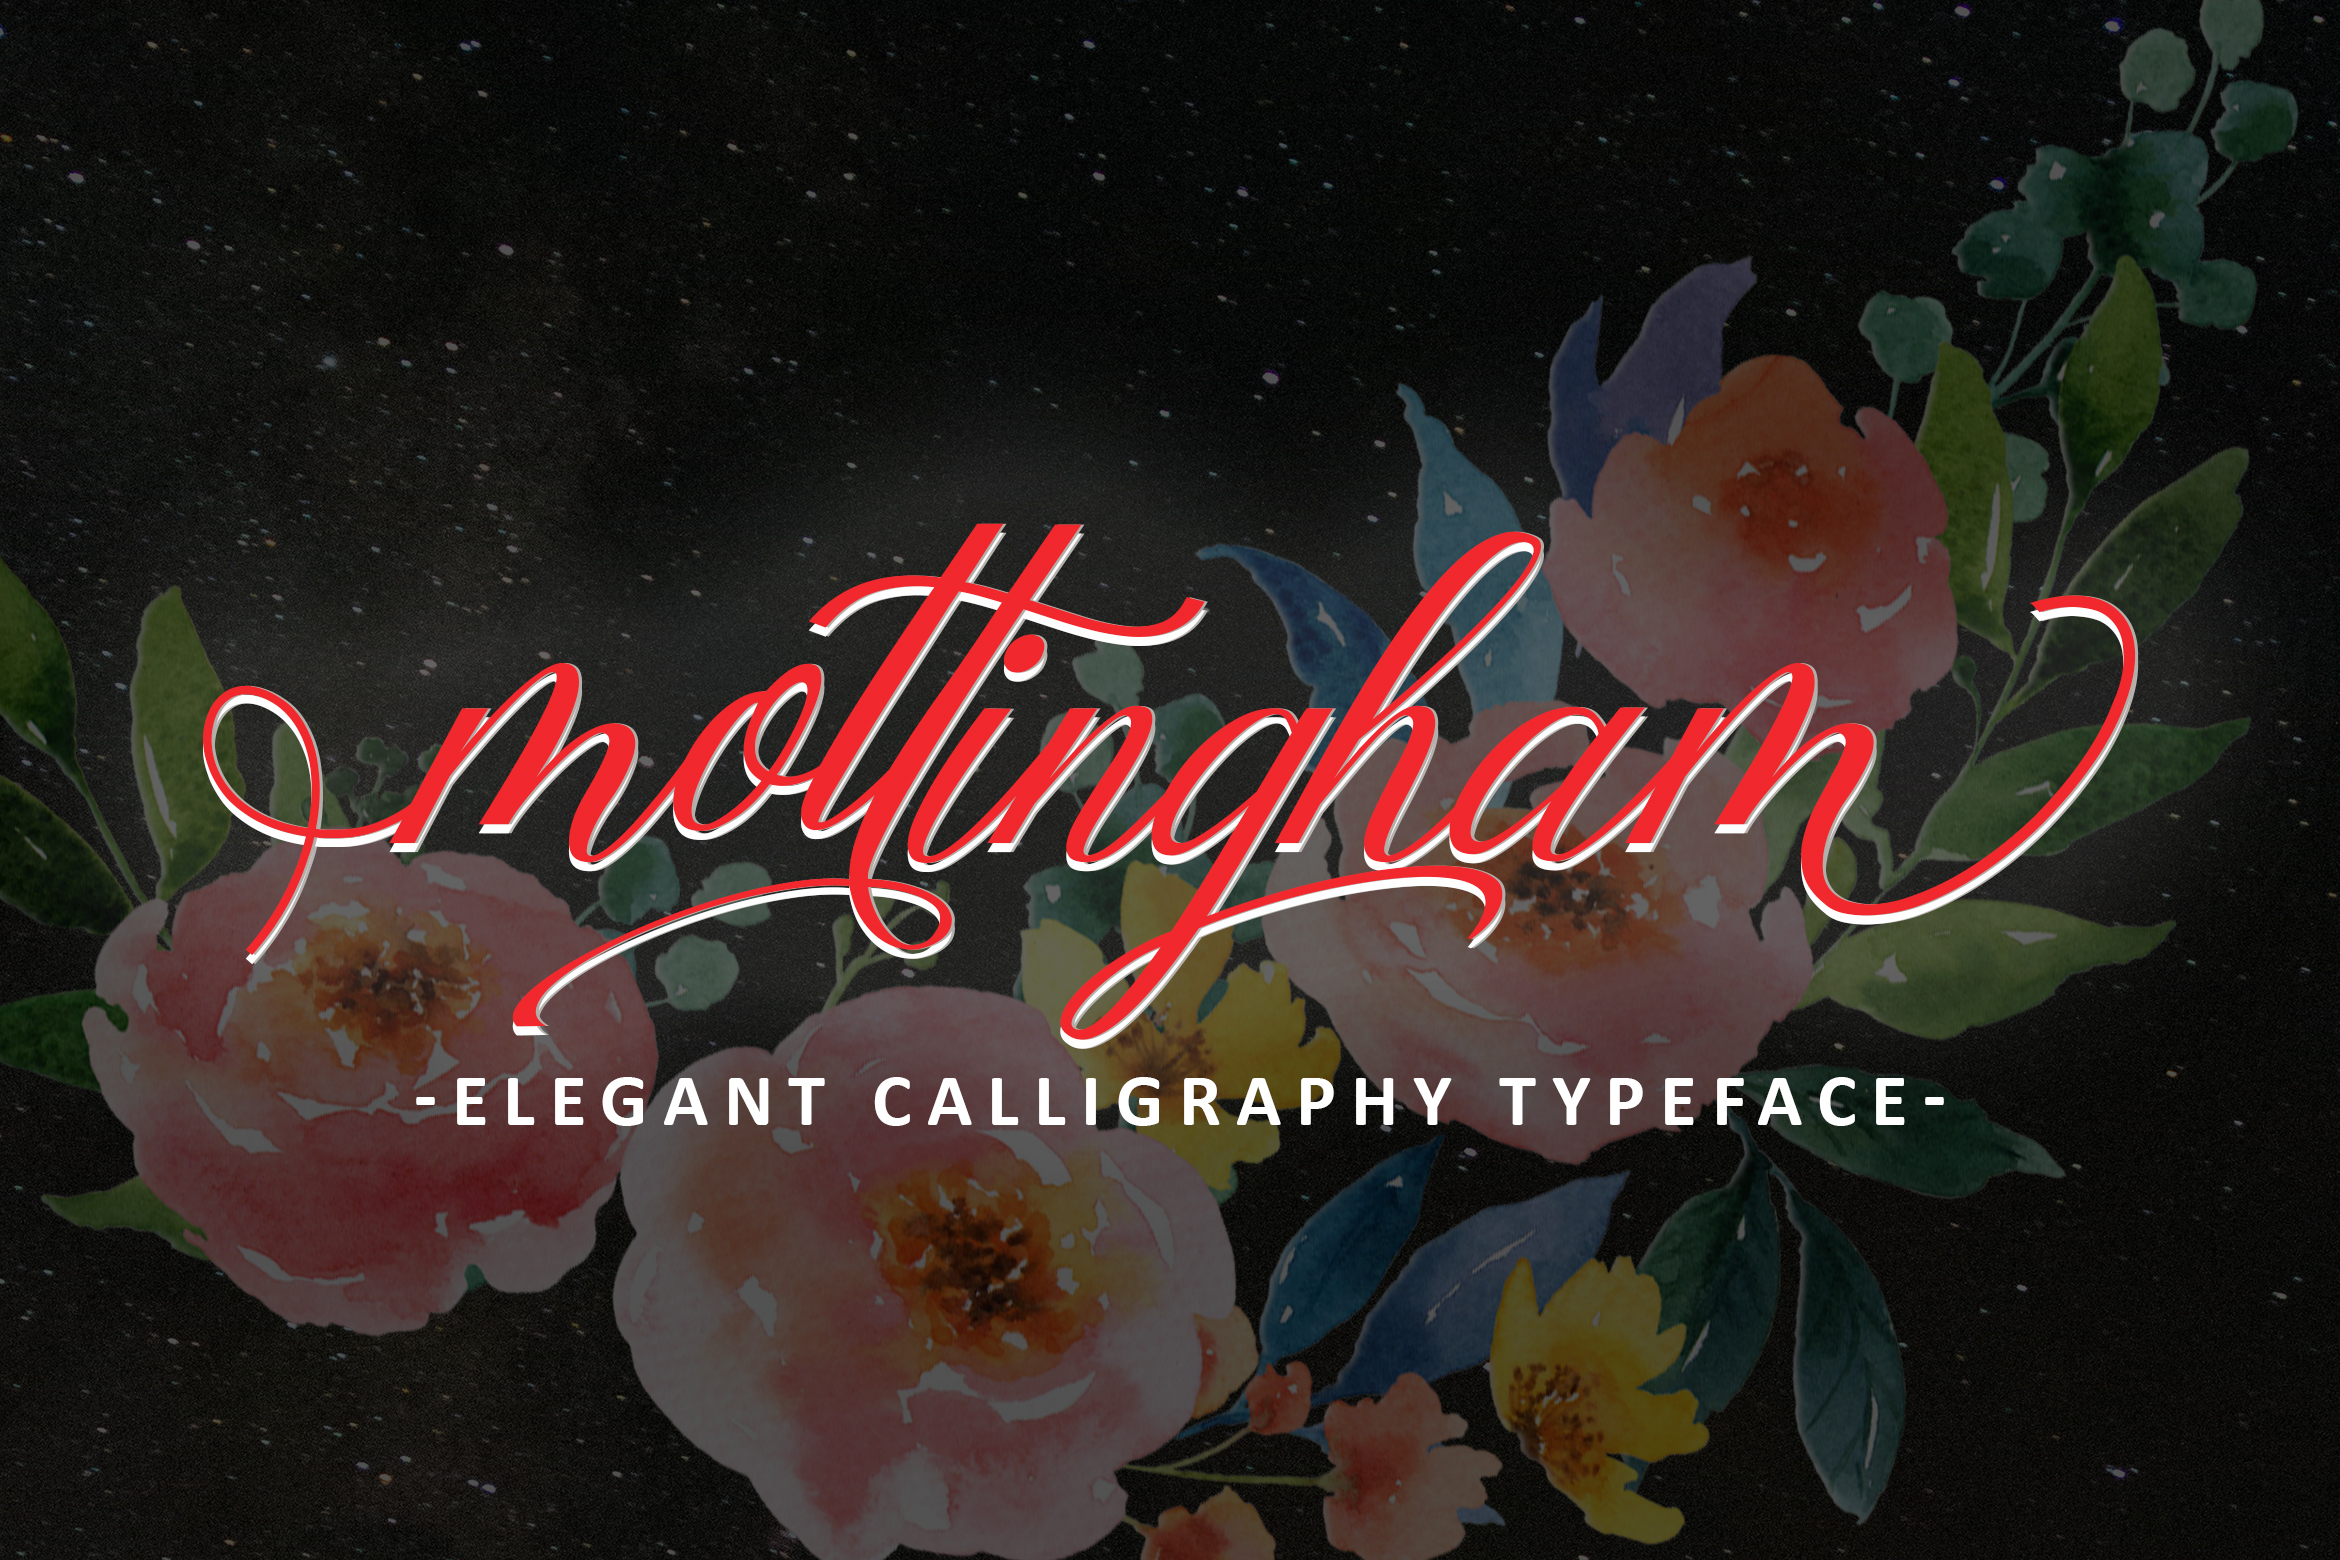 95+ Best Hand Lettering Fonts (Premium and Free) To Type the Most Important Words - ed5dcb106845fc2508f7a481617737a1 resize